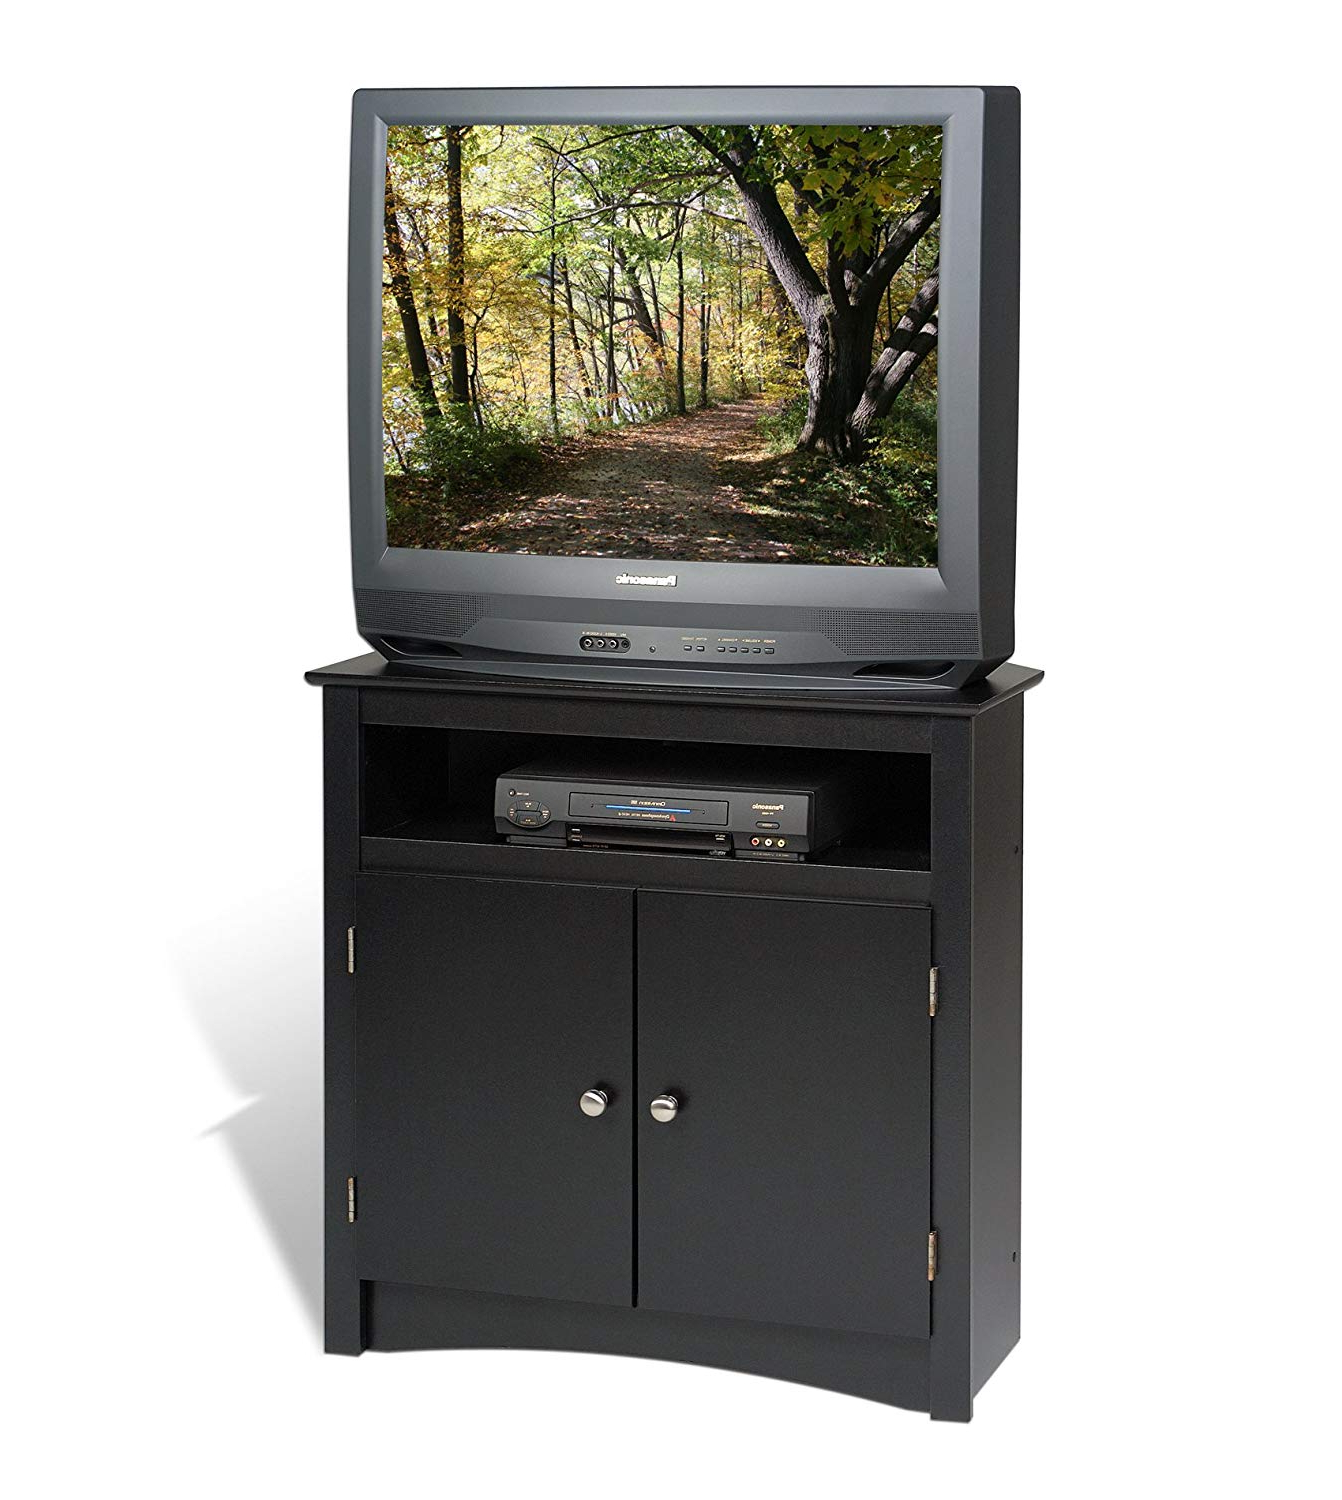 Amazon: Prepac Sonoma Corner Tv Cabinet, Black: Kitchen & Dining With Famous Black Corner Tv Cabinets (View 3 of 20)